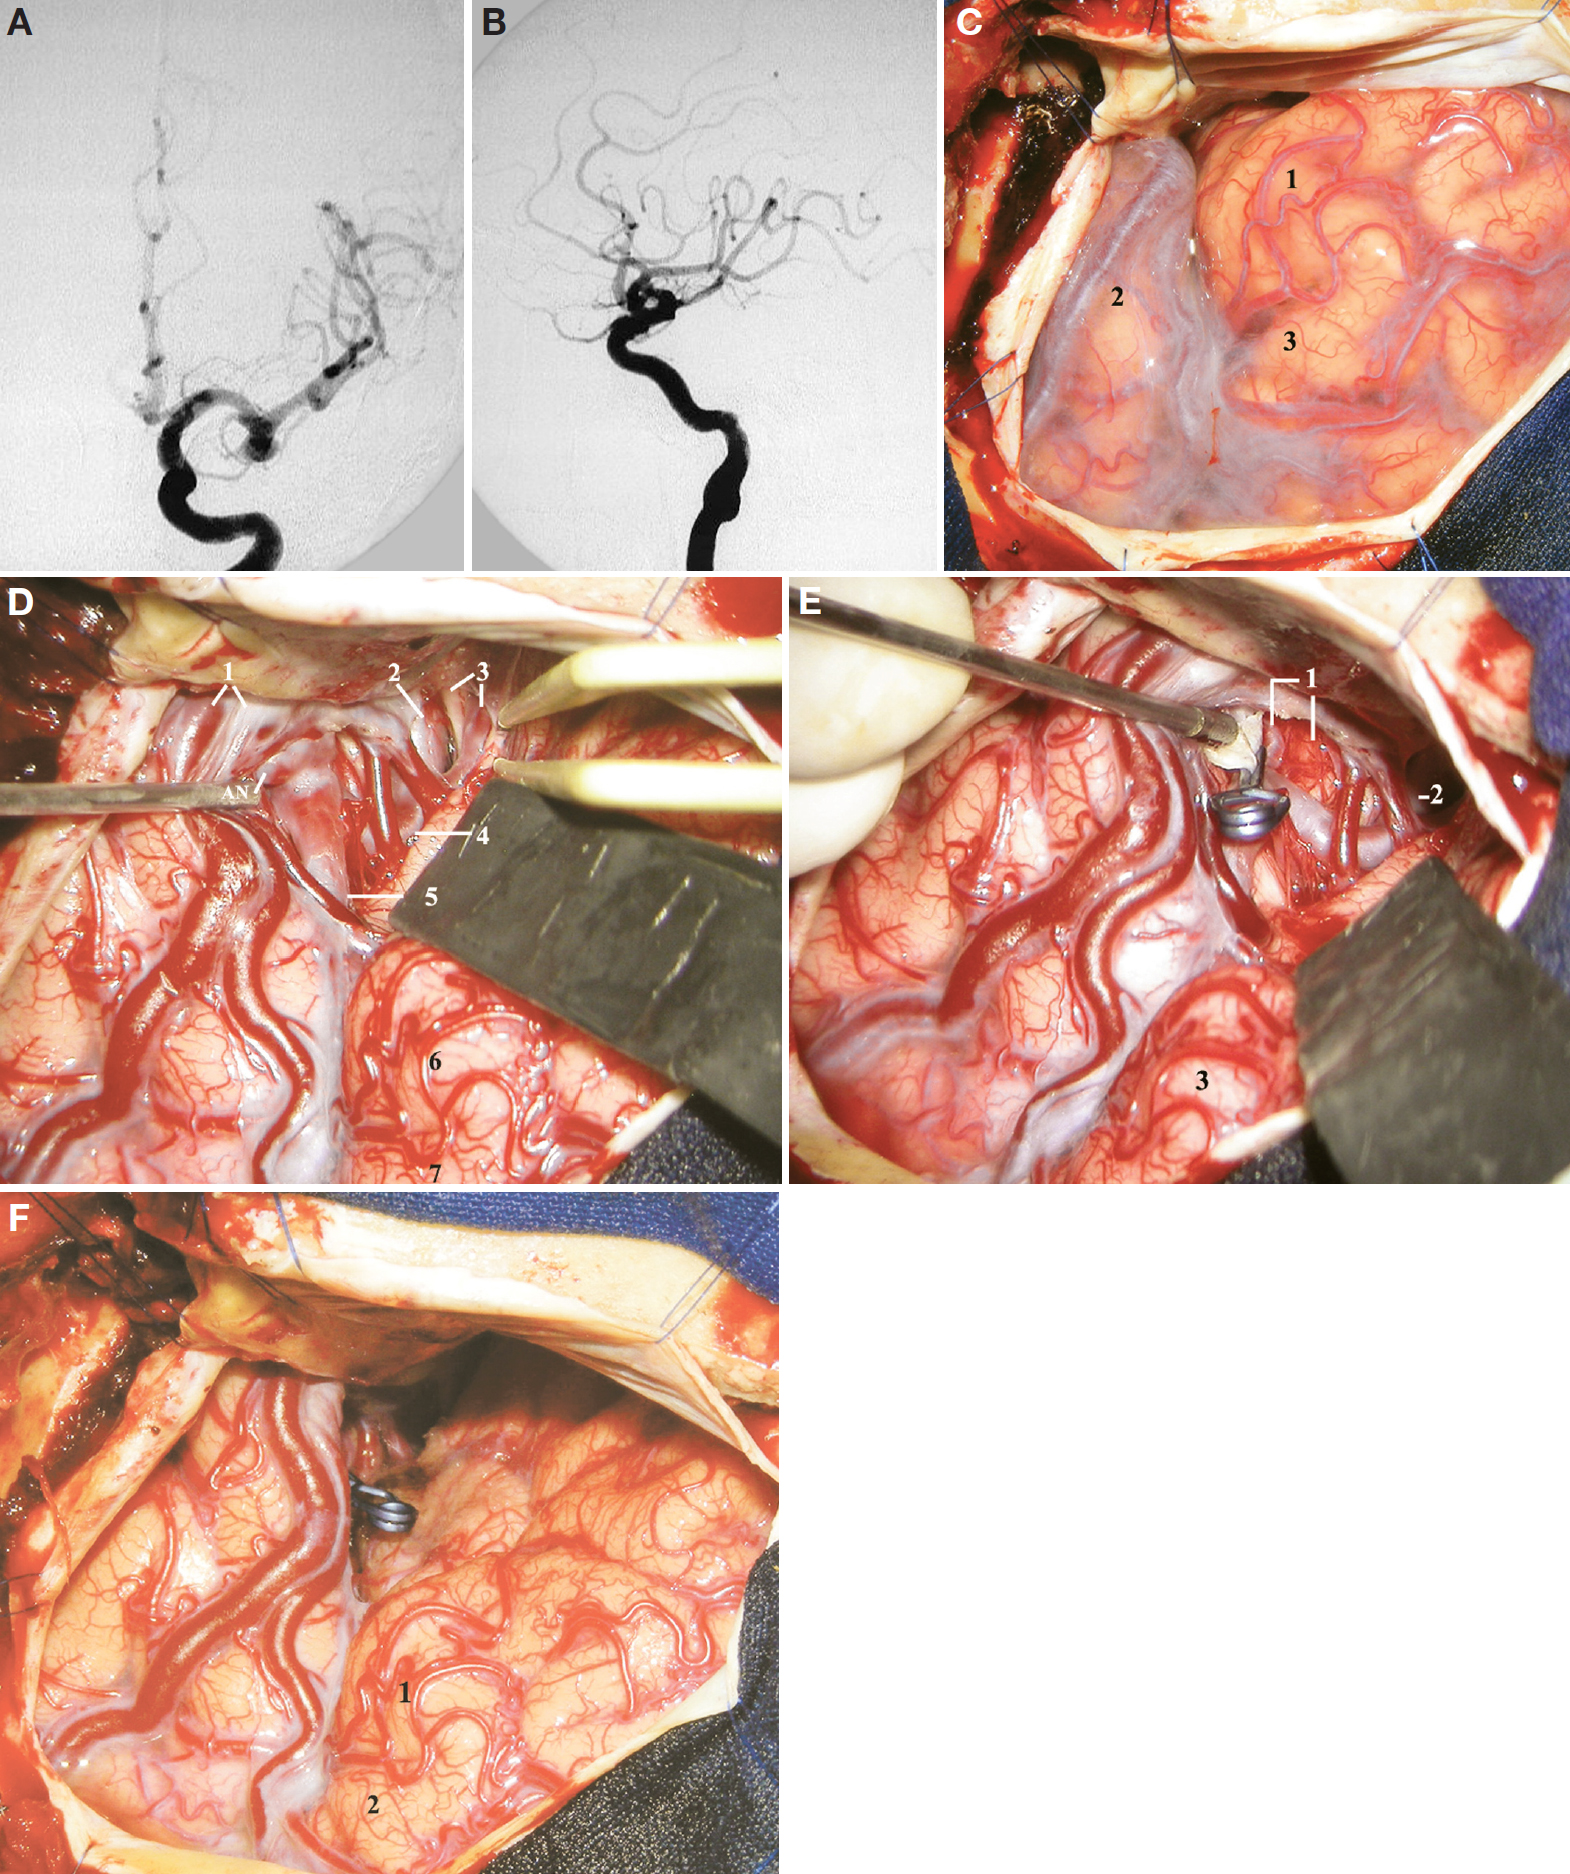 Figure 13. A, AP view of a left carotid angiography depicting an MCA aneurysm pointing downward. B, lateral view of the same angiography shown in A depicting an MCA aneurysm pointing anteriorly and inferiorly. C, surgical exposure after a left pterional craniotomy followed by the dural opening. 1, pars orbitalis; 2, superior temporal gyrus; 3, pars triangularis. D, intraoperative photograph. The sylvian fissure was split proximal to the pars orbitalis to expose the aneurysm. 1, superficial sylvian veins; 2, supraclinoid carotid artery; 3, optic nerve and anterior cerebral artery; 4, M1 proximal to the aneurysm; 5, MCA distal to the aneurysm; 6, pars orbitalis; 7, pars triangularis. The olfactory tract is located beneath the tip of the bipolar forceps. E, the aneurysm shown in D was clipped and the dome opened and cut (at the tip of the suction tube). 1, temporal branch of the MCA and the planum polare; 2, carotid artery; 3, pars orbitalis. F, overall view of the surgical exposure after aneurysm clipping. Note the location of the clip (which indicates the location of the aneurysm) and the location of the pars triangularis (which indicates approximately the location of the insular apex, just distal to the insular pole and to the genu of the MCA). 1, pars orbitalis; 2, pars triangularis. (Images courtesy of AL Rhoton, Jr.)